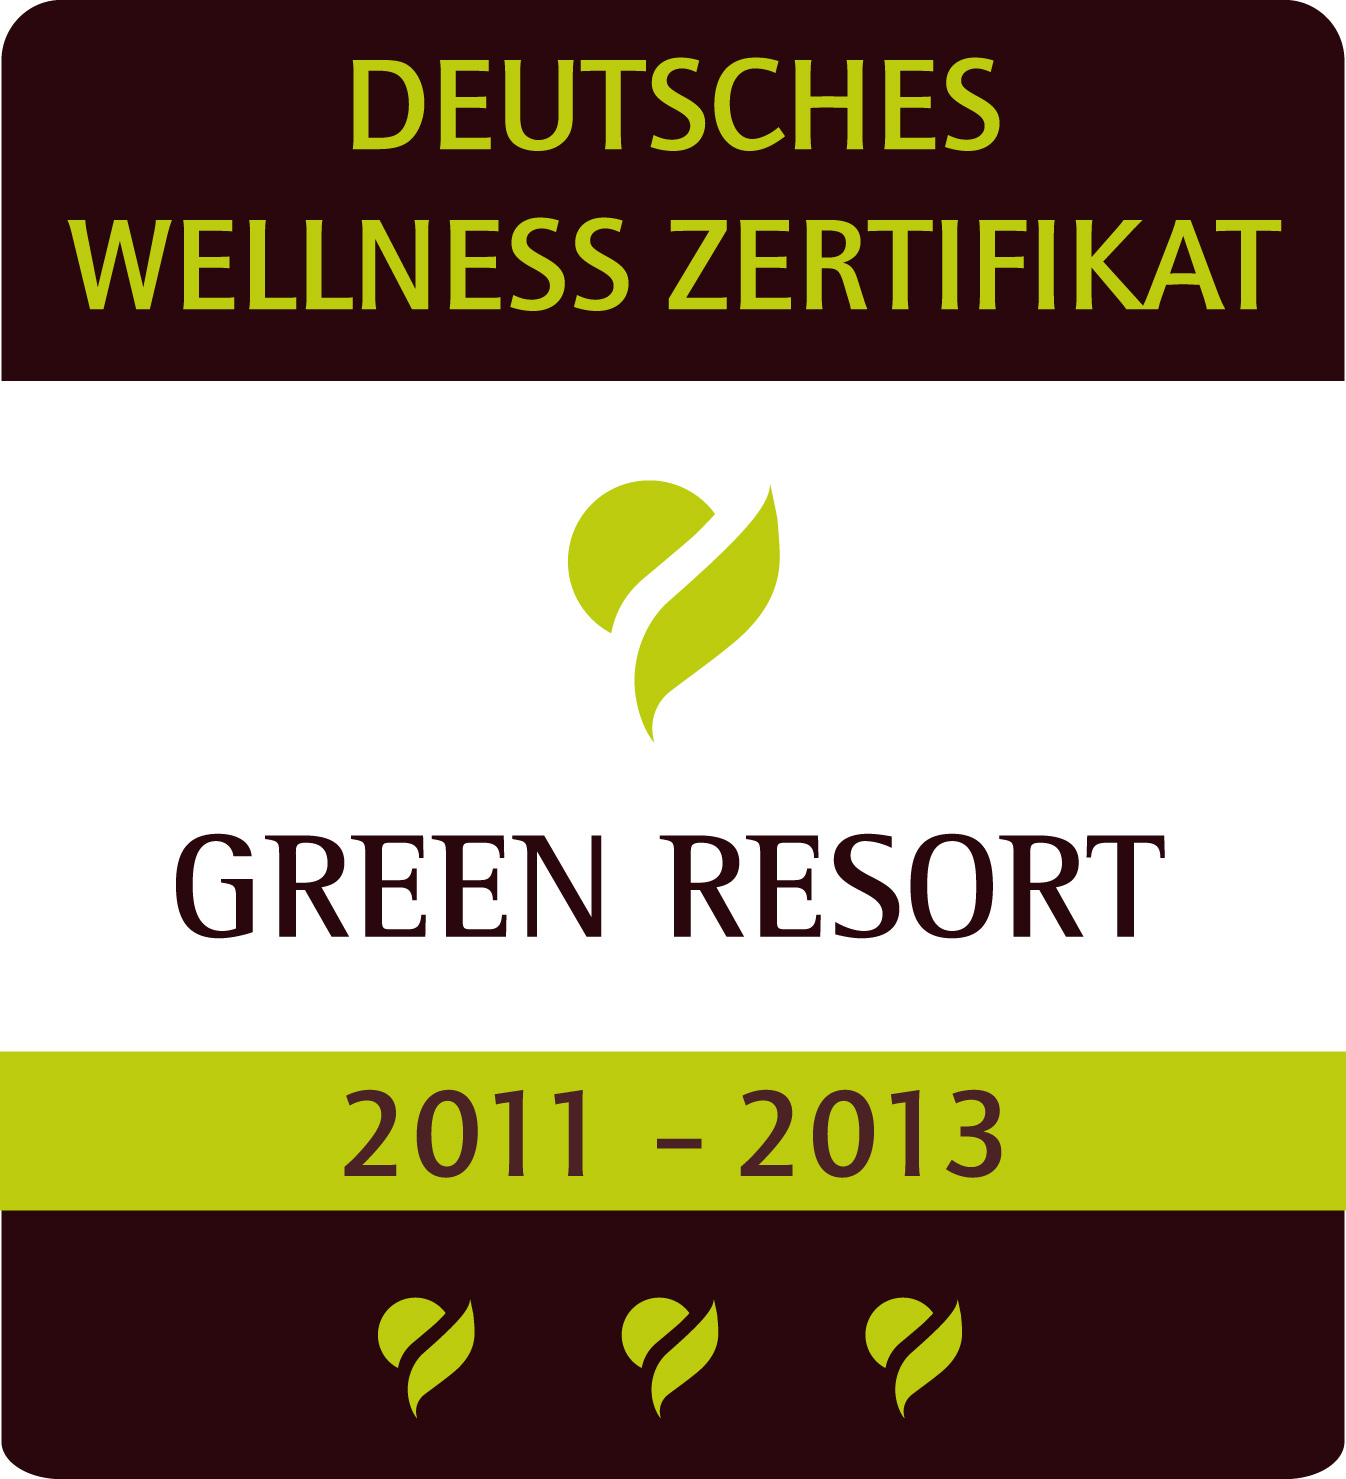 green resort zertifikat